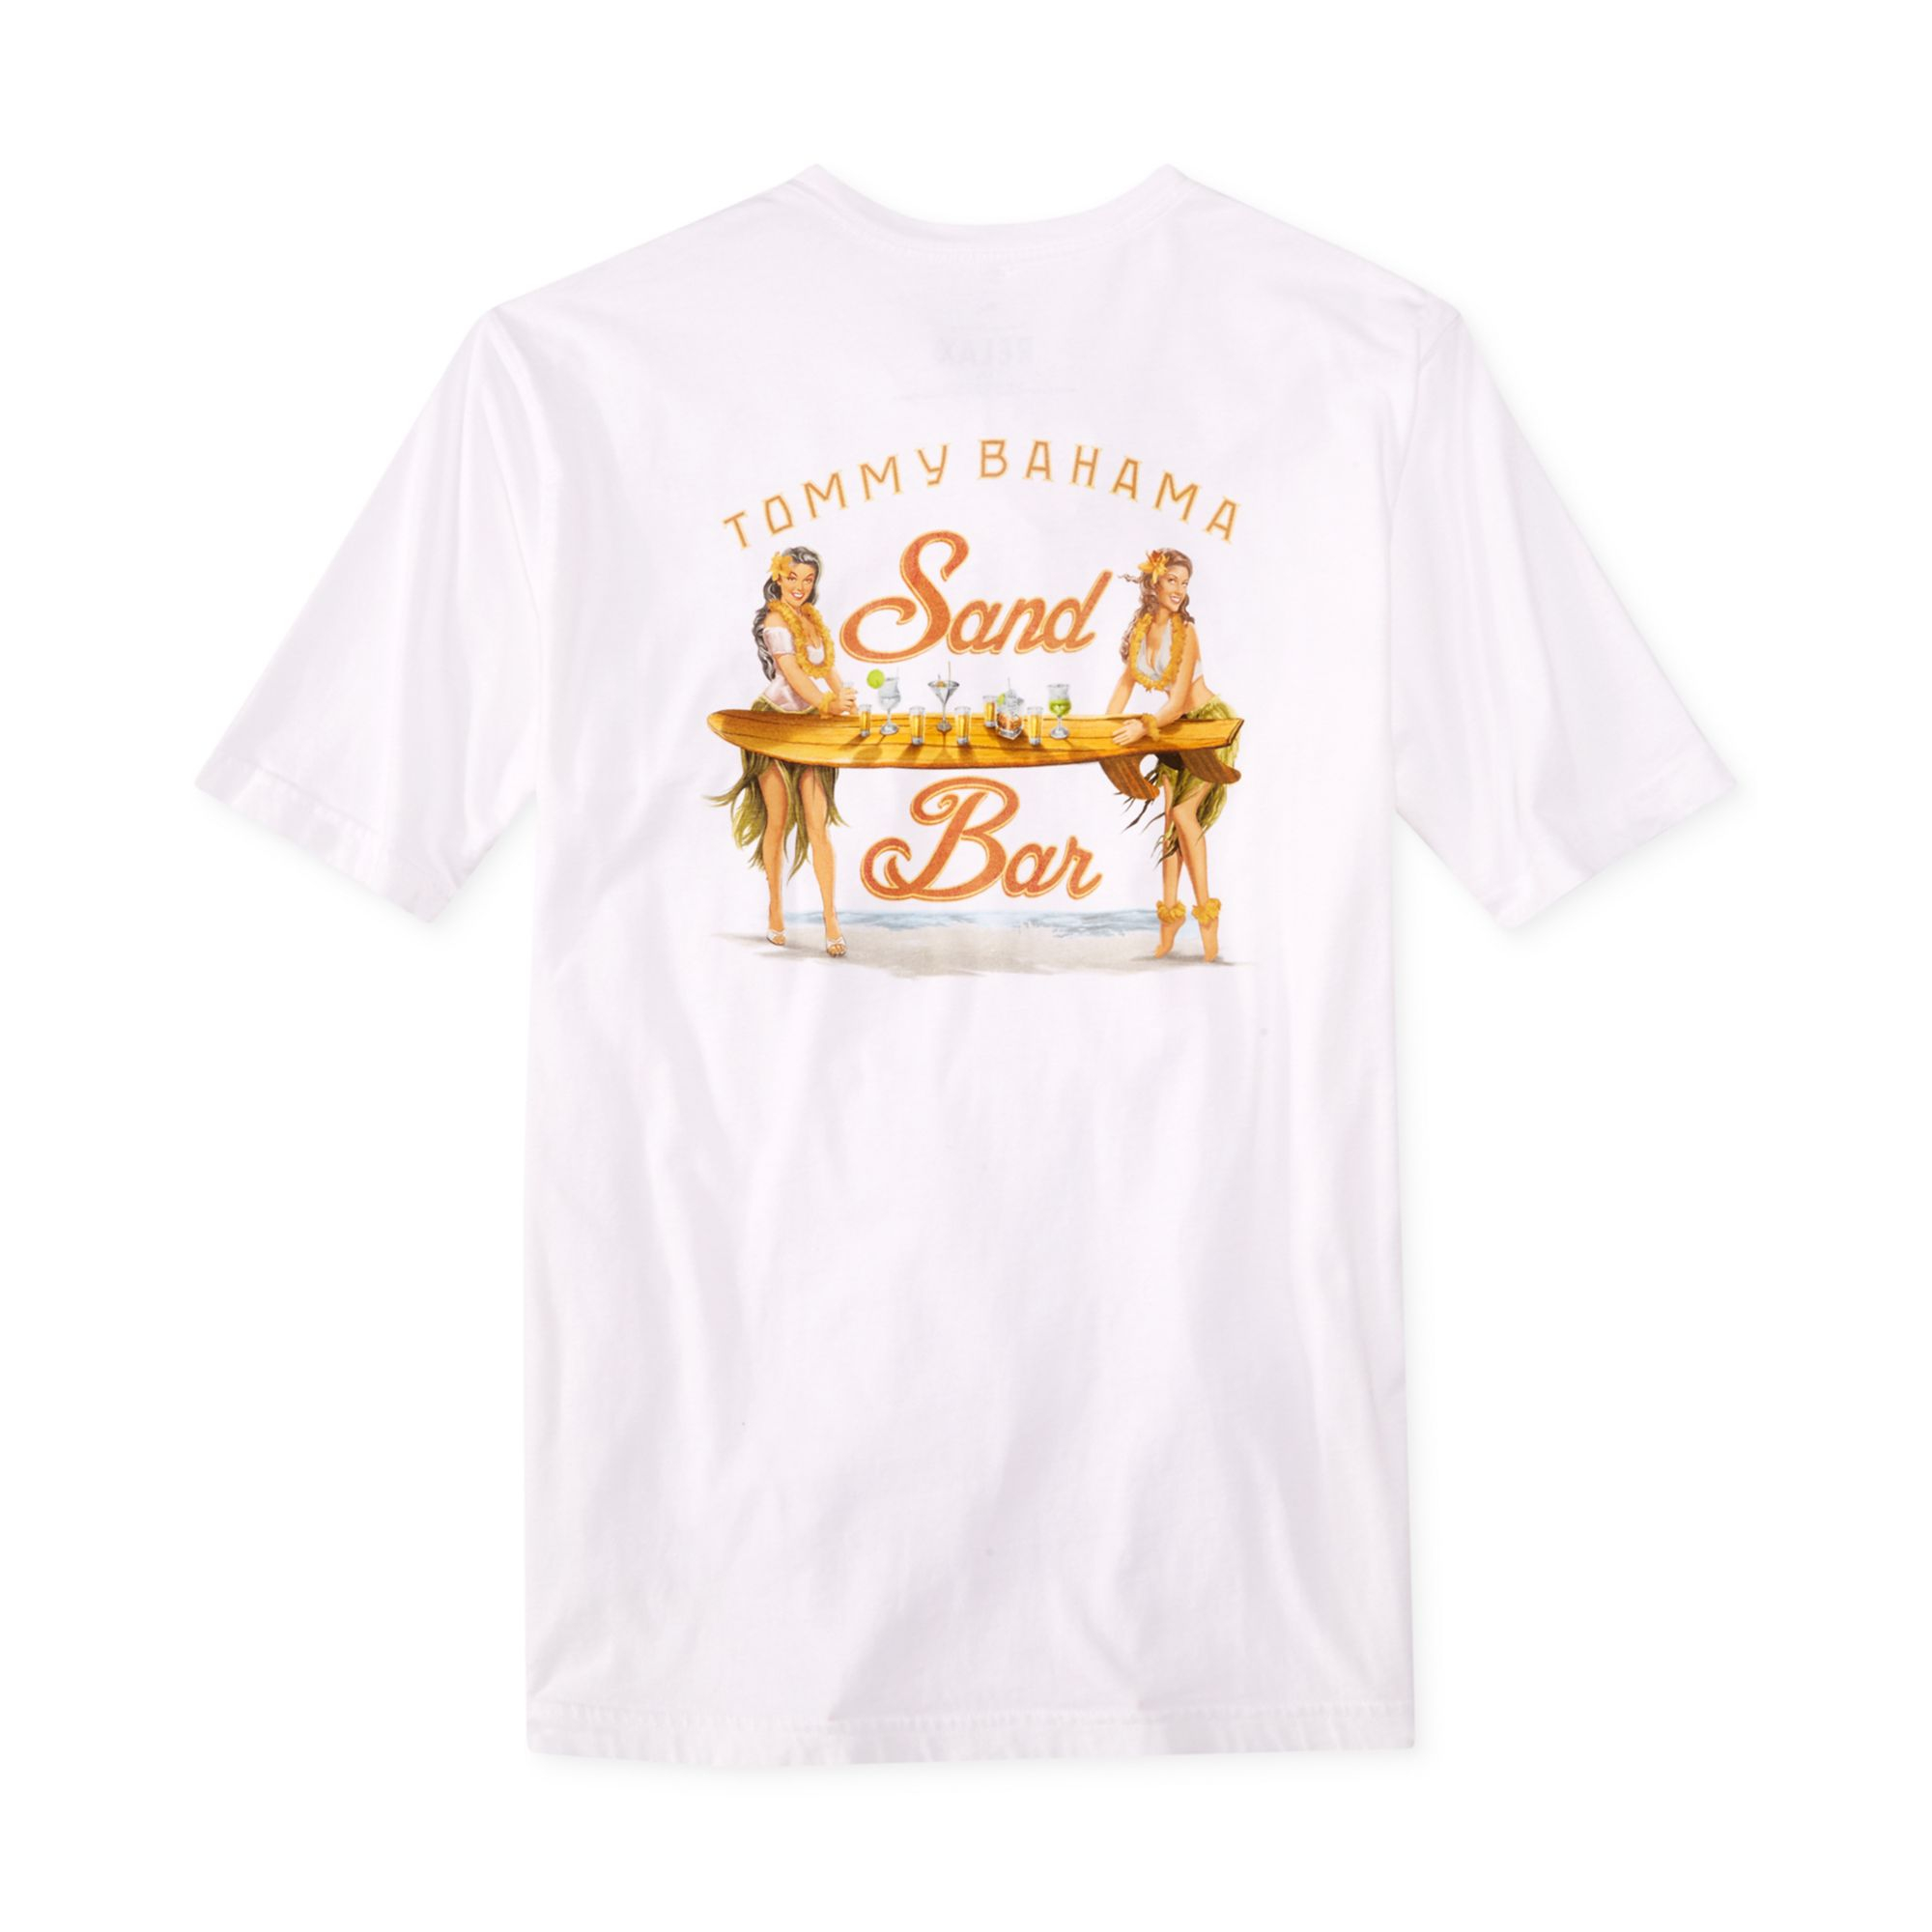 Lyst tommy bahama sand bar tshirt in white for men for Tommy bahama christmas shirt 2014